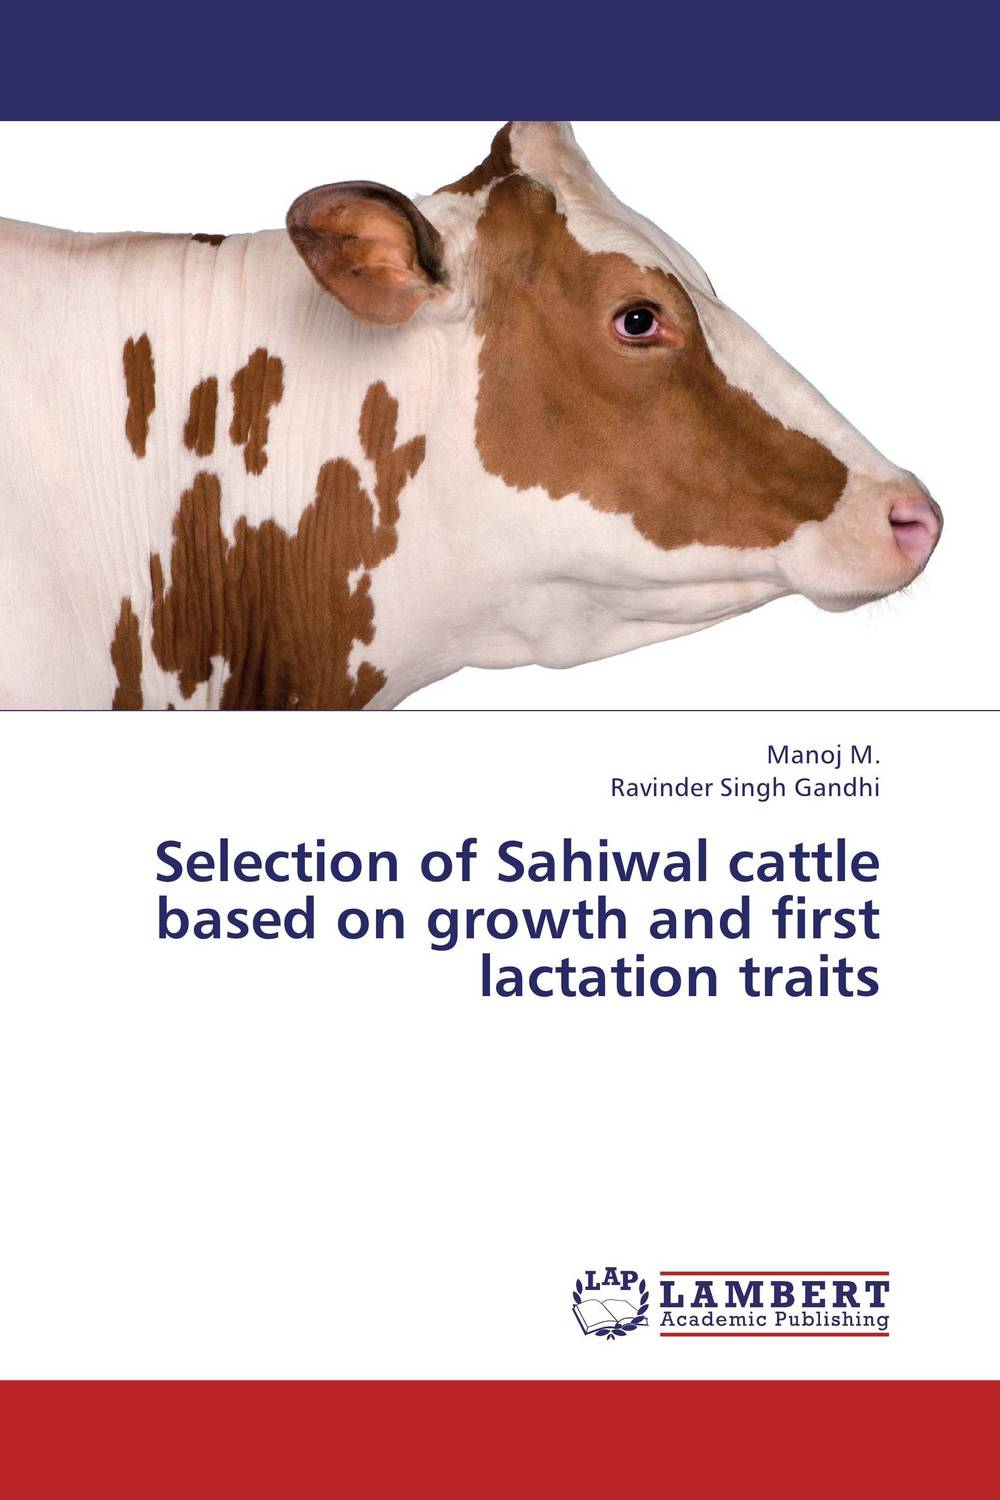 Selection of Sahiwal cattle based on growth and first lactation traits